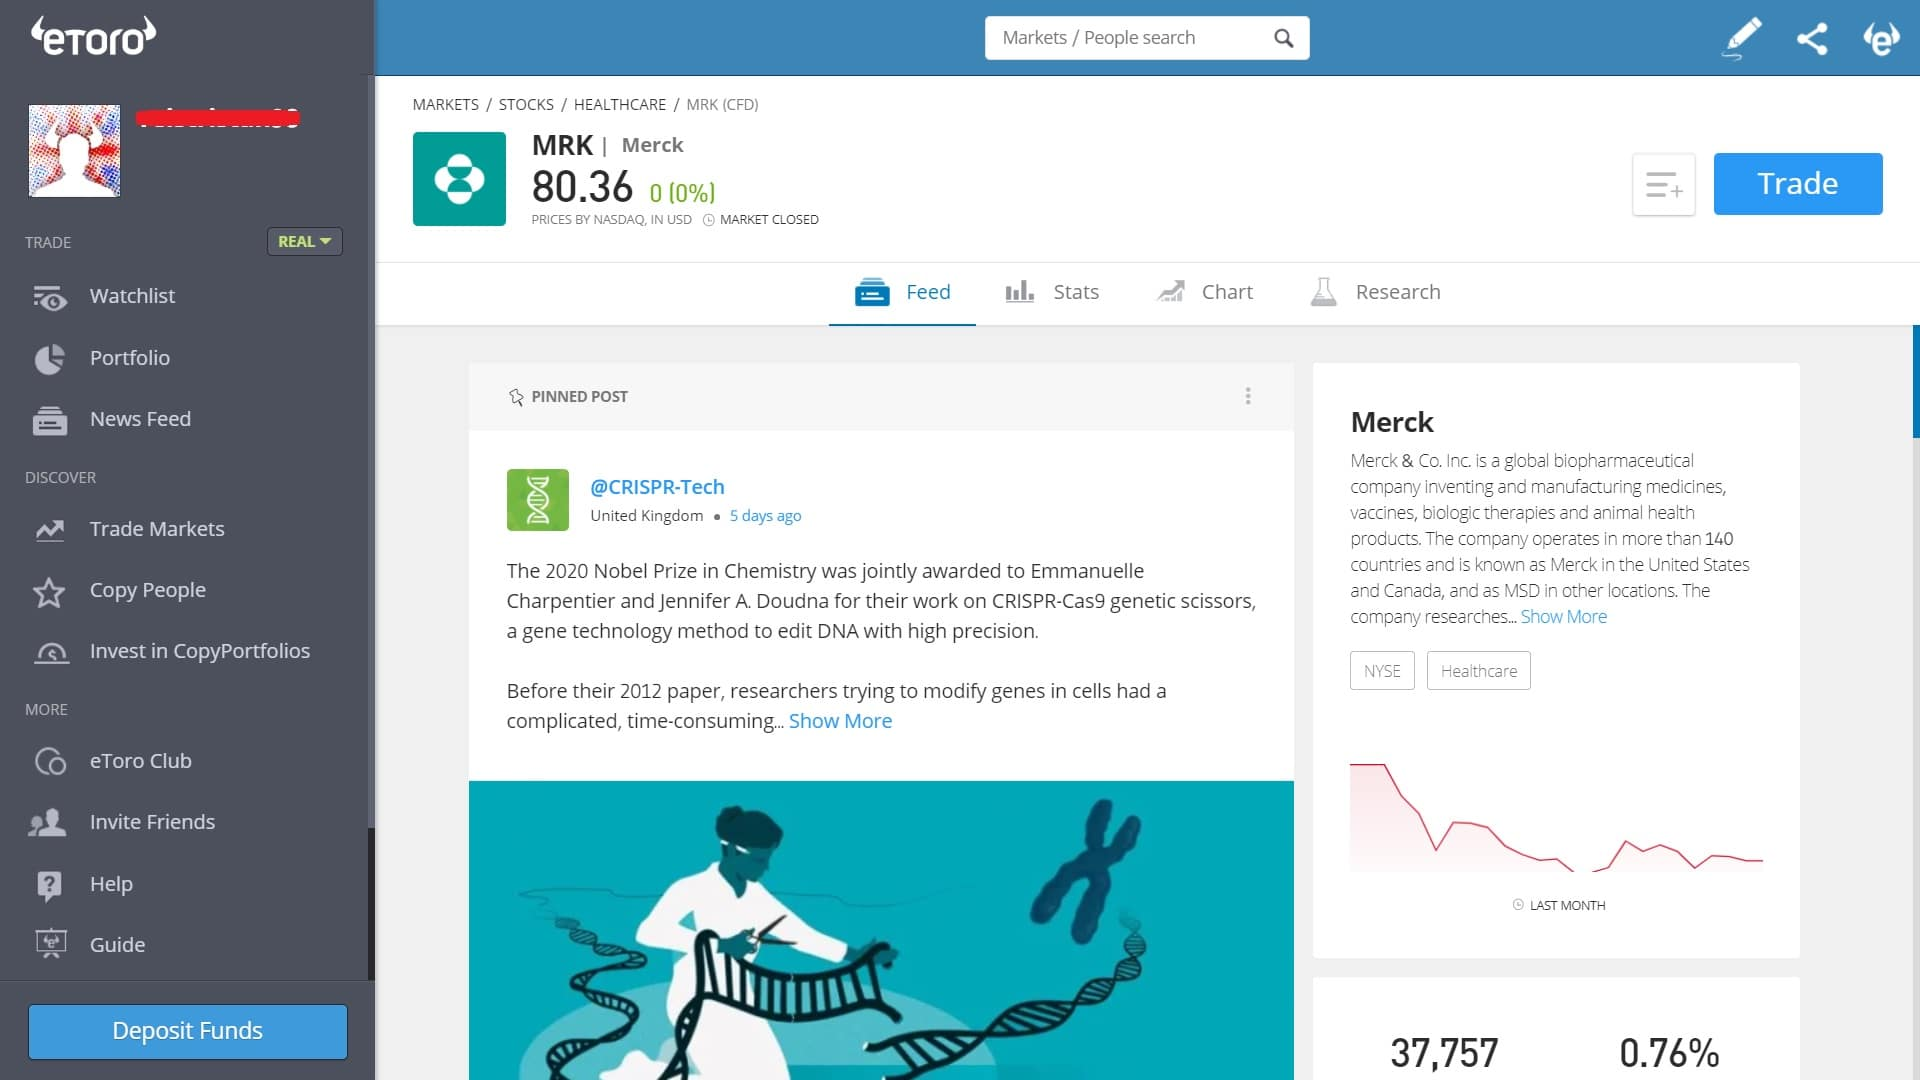 Merck stock trading on eToro's platform